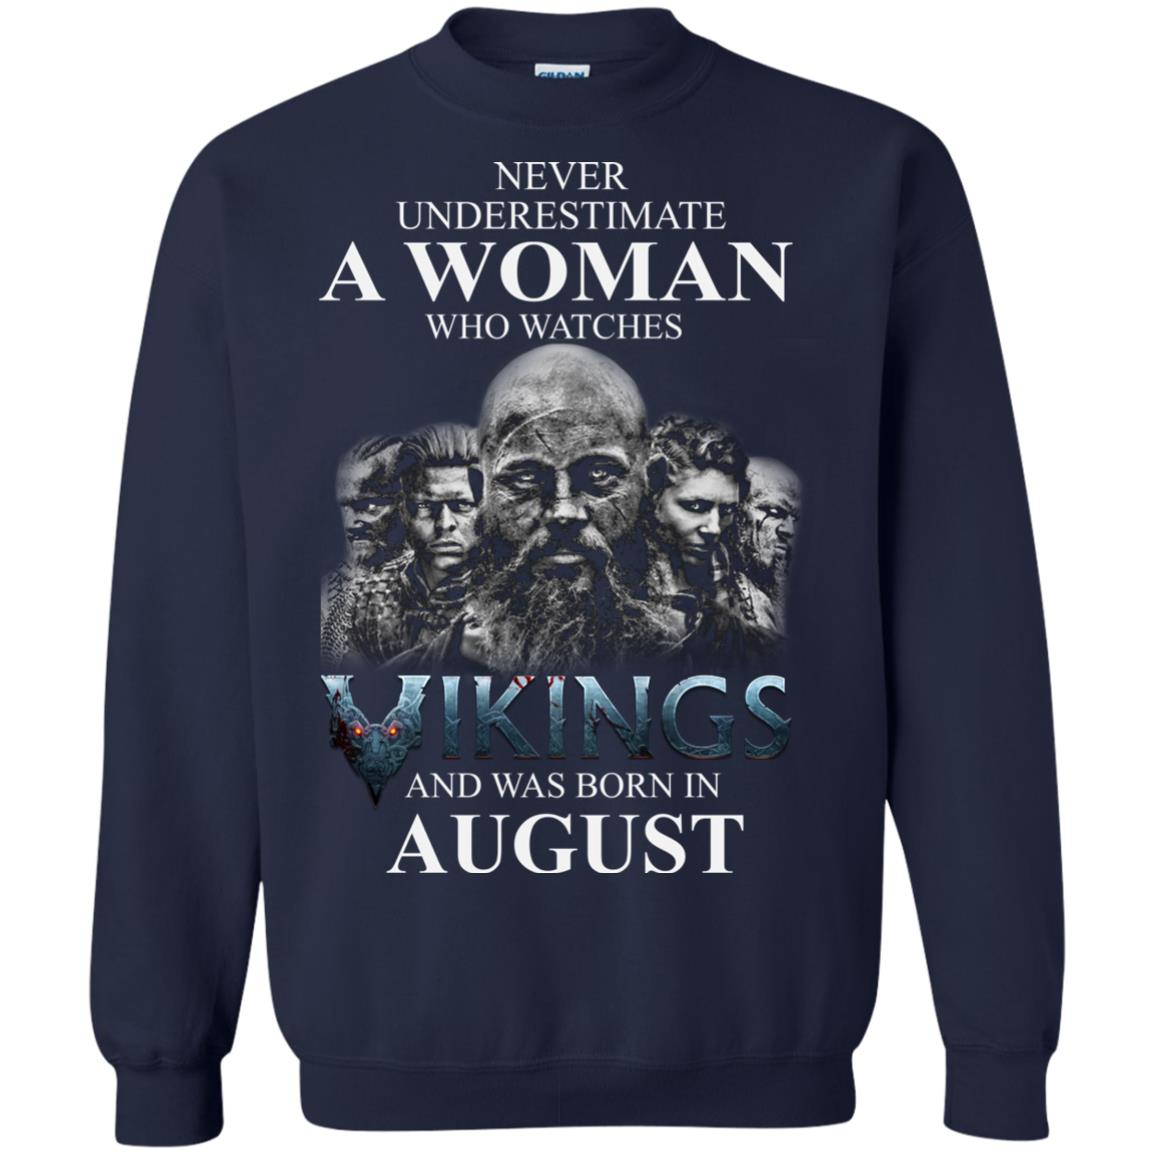 image 1274 - Never Underestimate A woman who watches Vikings and was born in August shirt